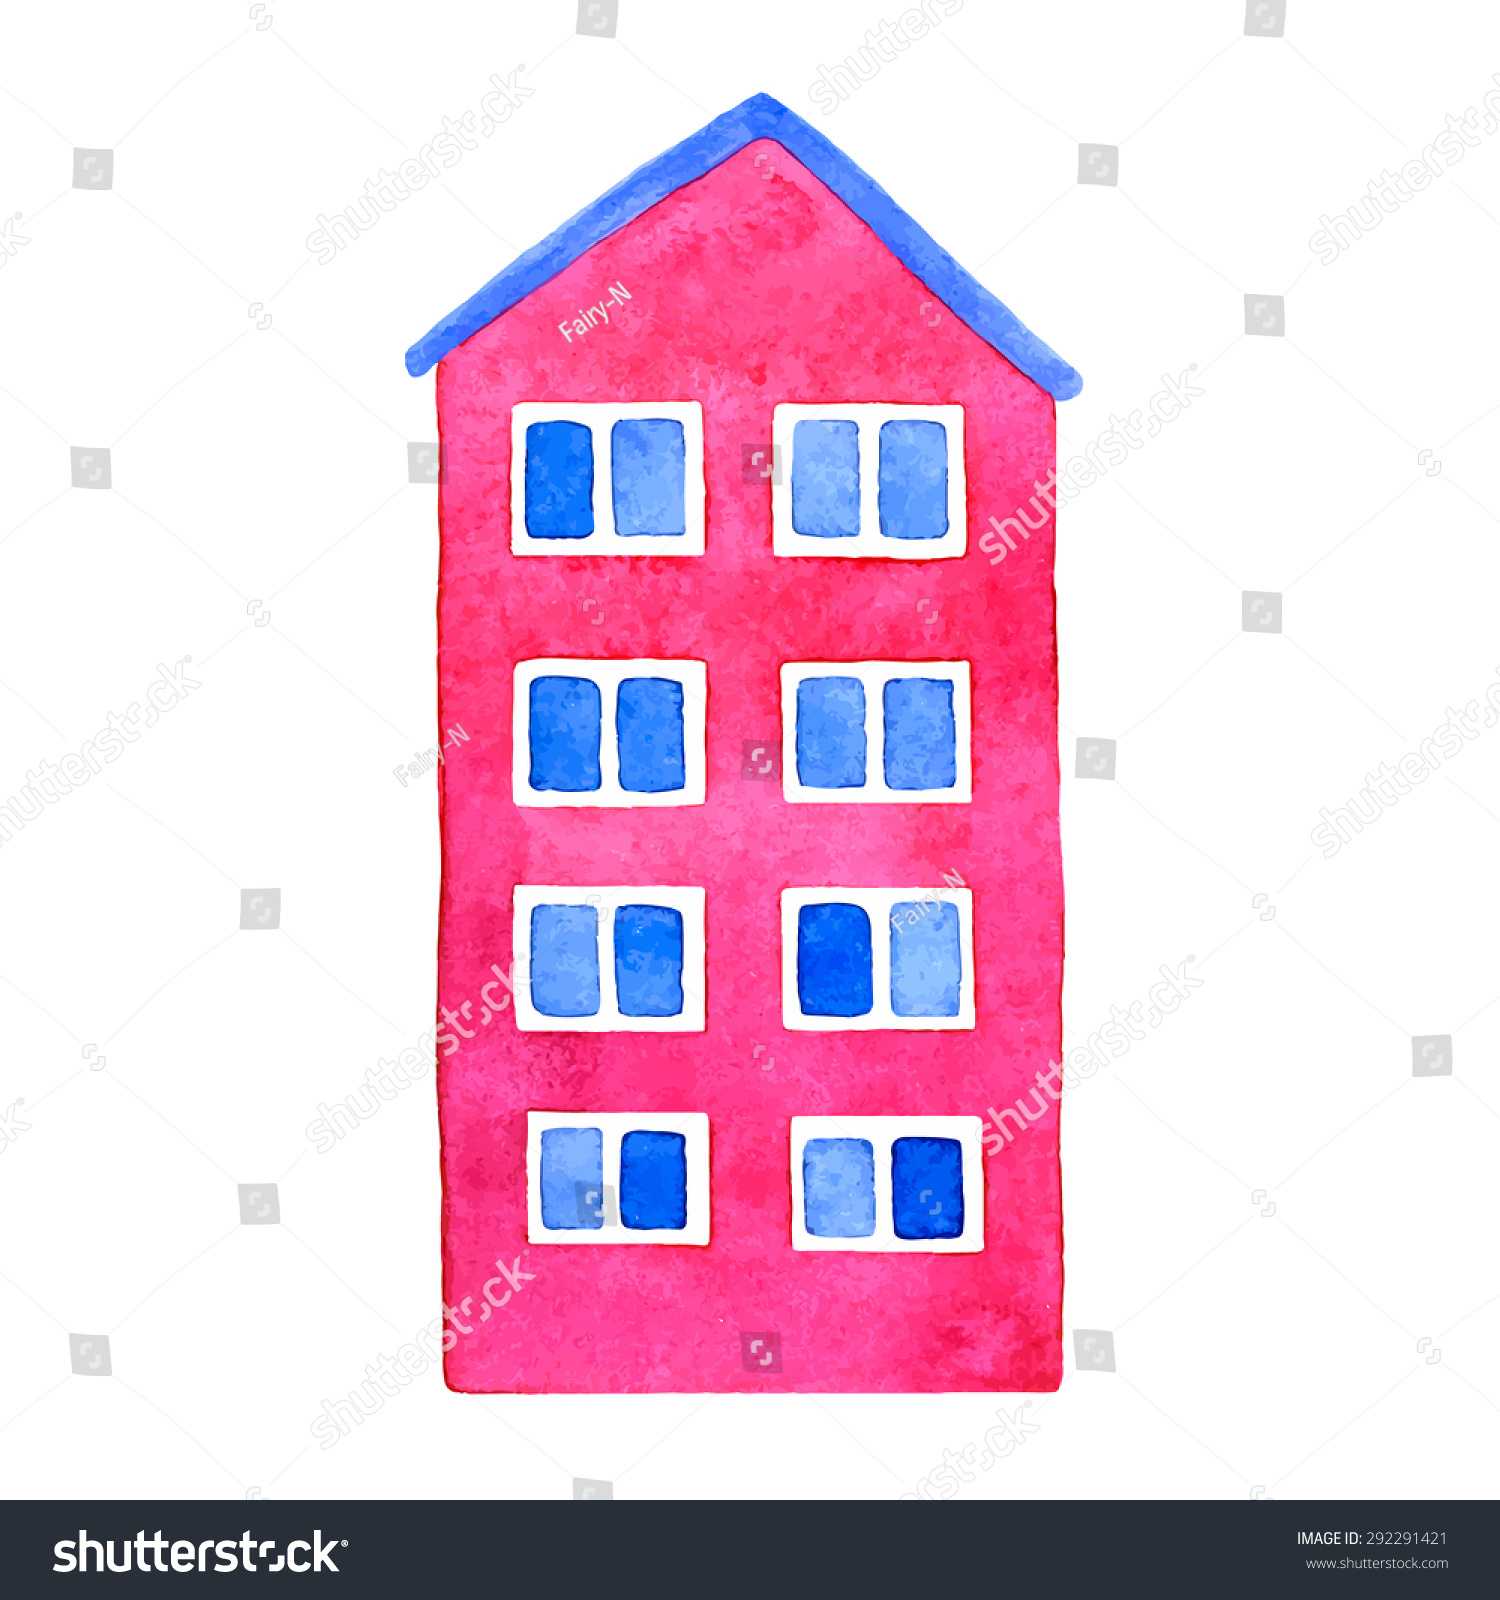 Vector Watercolor Pink House Blue Roof Stock Vector (Royalty Free ...